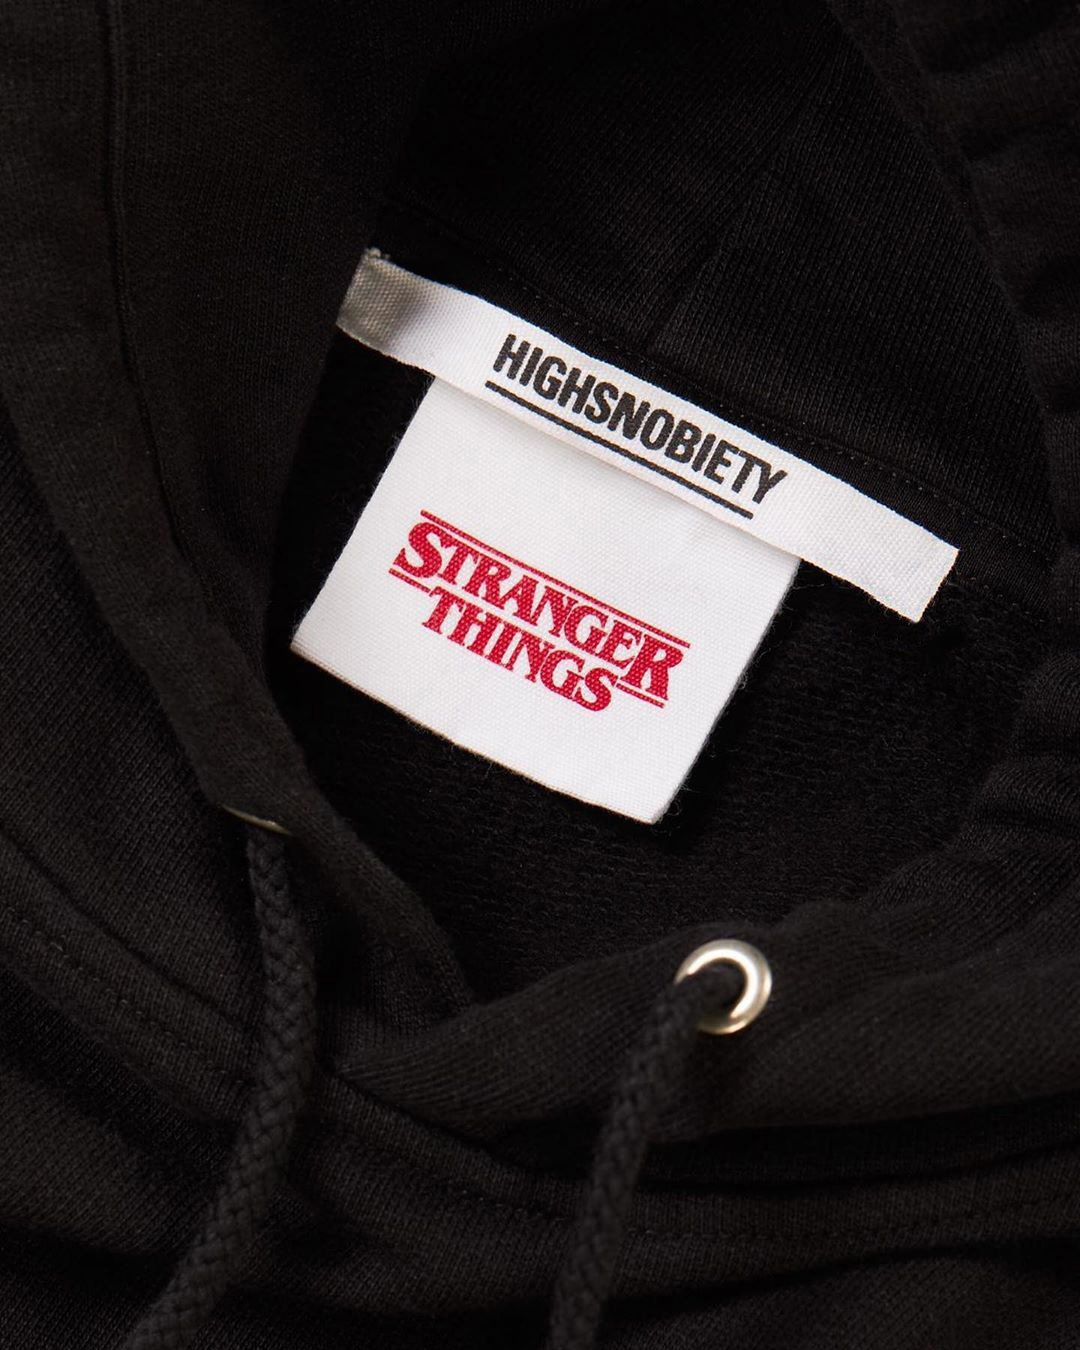 Stranger Things 3 x Highsnobiety Logo Hoodie - Black - Image 3